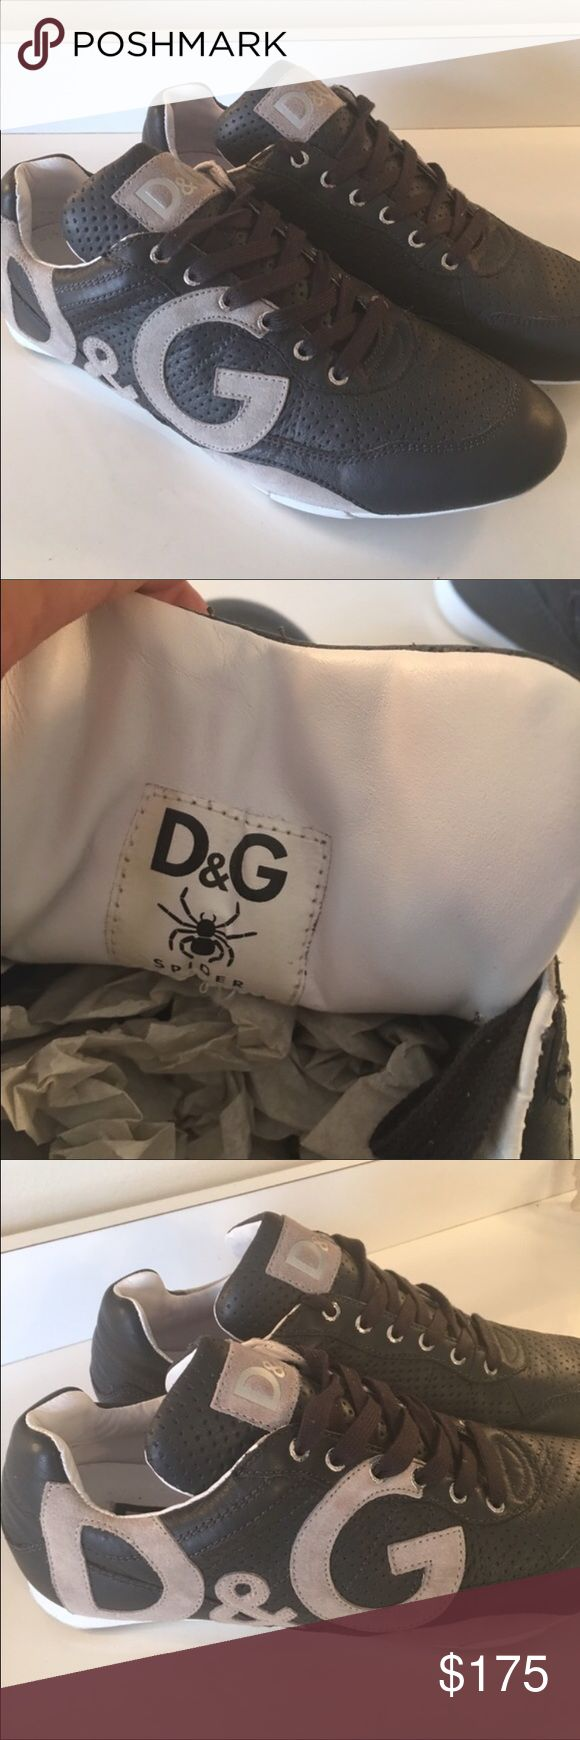 Dolce & Gabana 100% Authentic D&G men's sneakers 100% Authentic. Very fashionable and perfect for any outfit. Only wore them a couple times. Great condition as you can see from the pictures. They are a American size 10.5 Dolce & Gabbana Shoes Sneakers